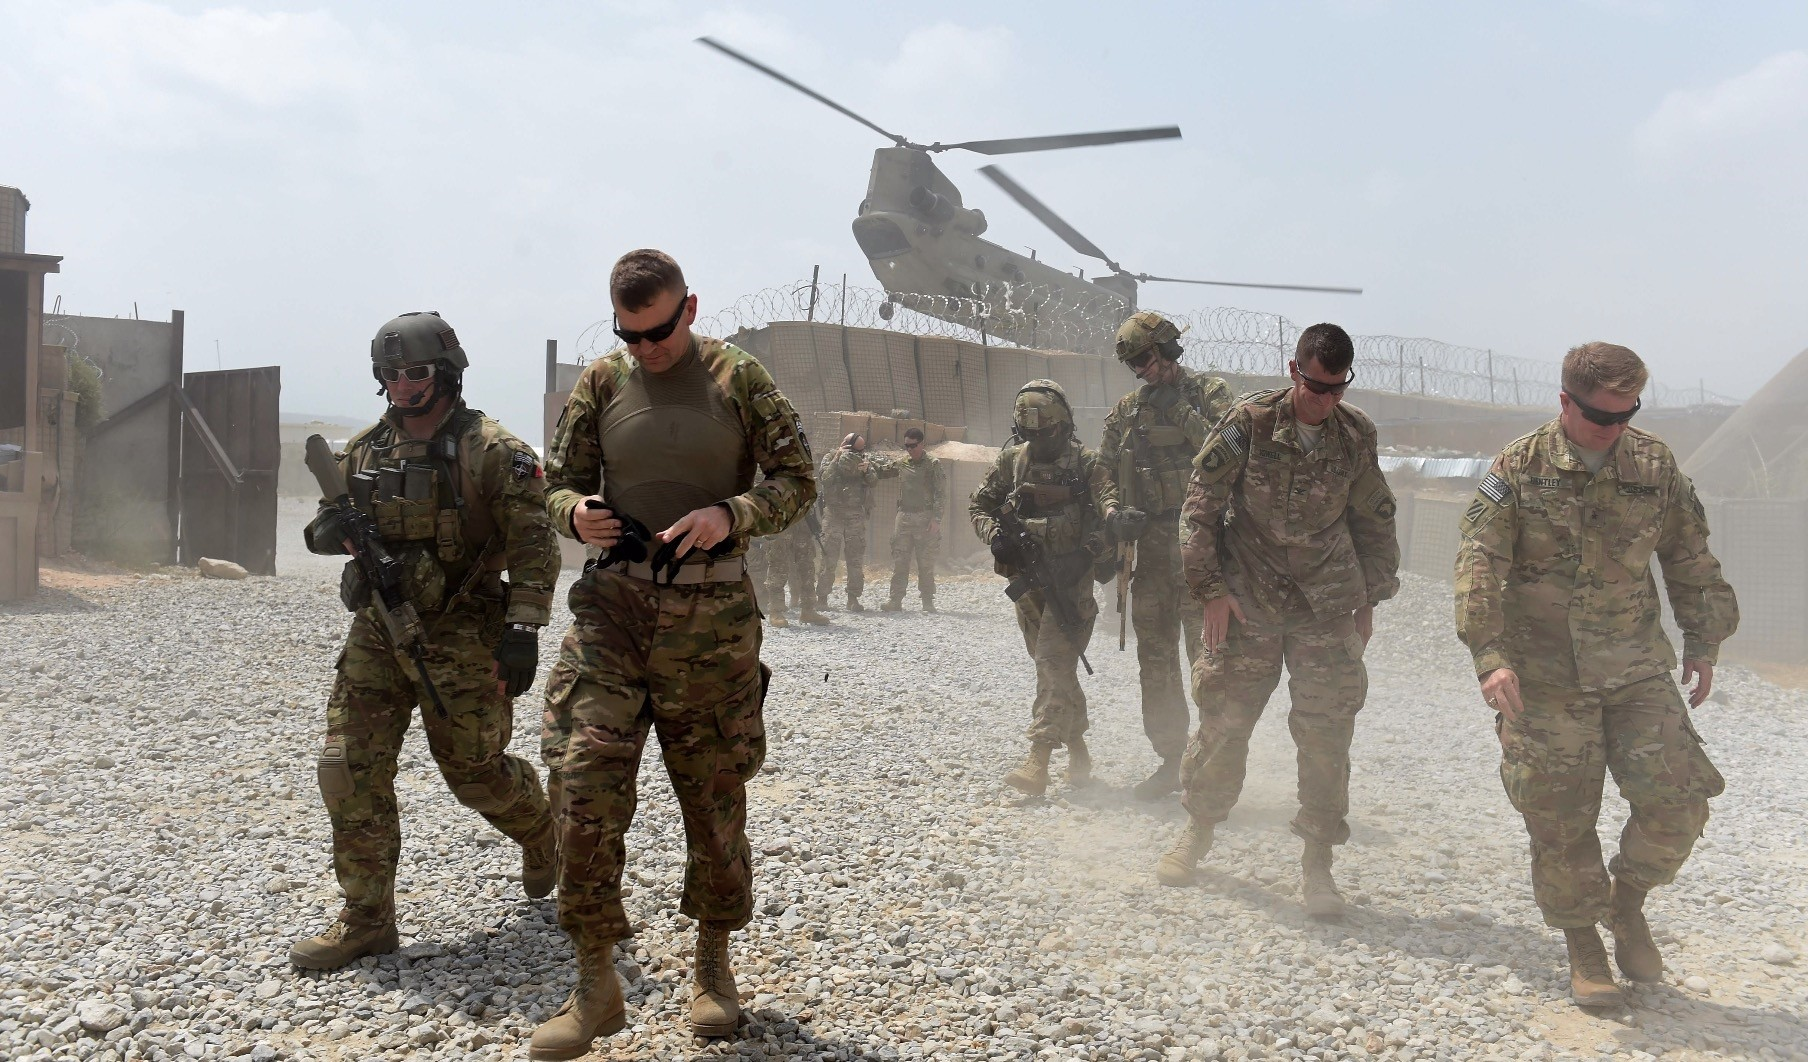 U.S. army soldiers walk as a NATO helicopter flies overhead at coalition force, in the Khogyani district, eastern Syria, Aug. 12, 2015.